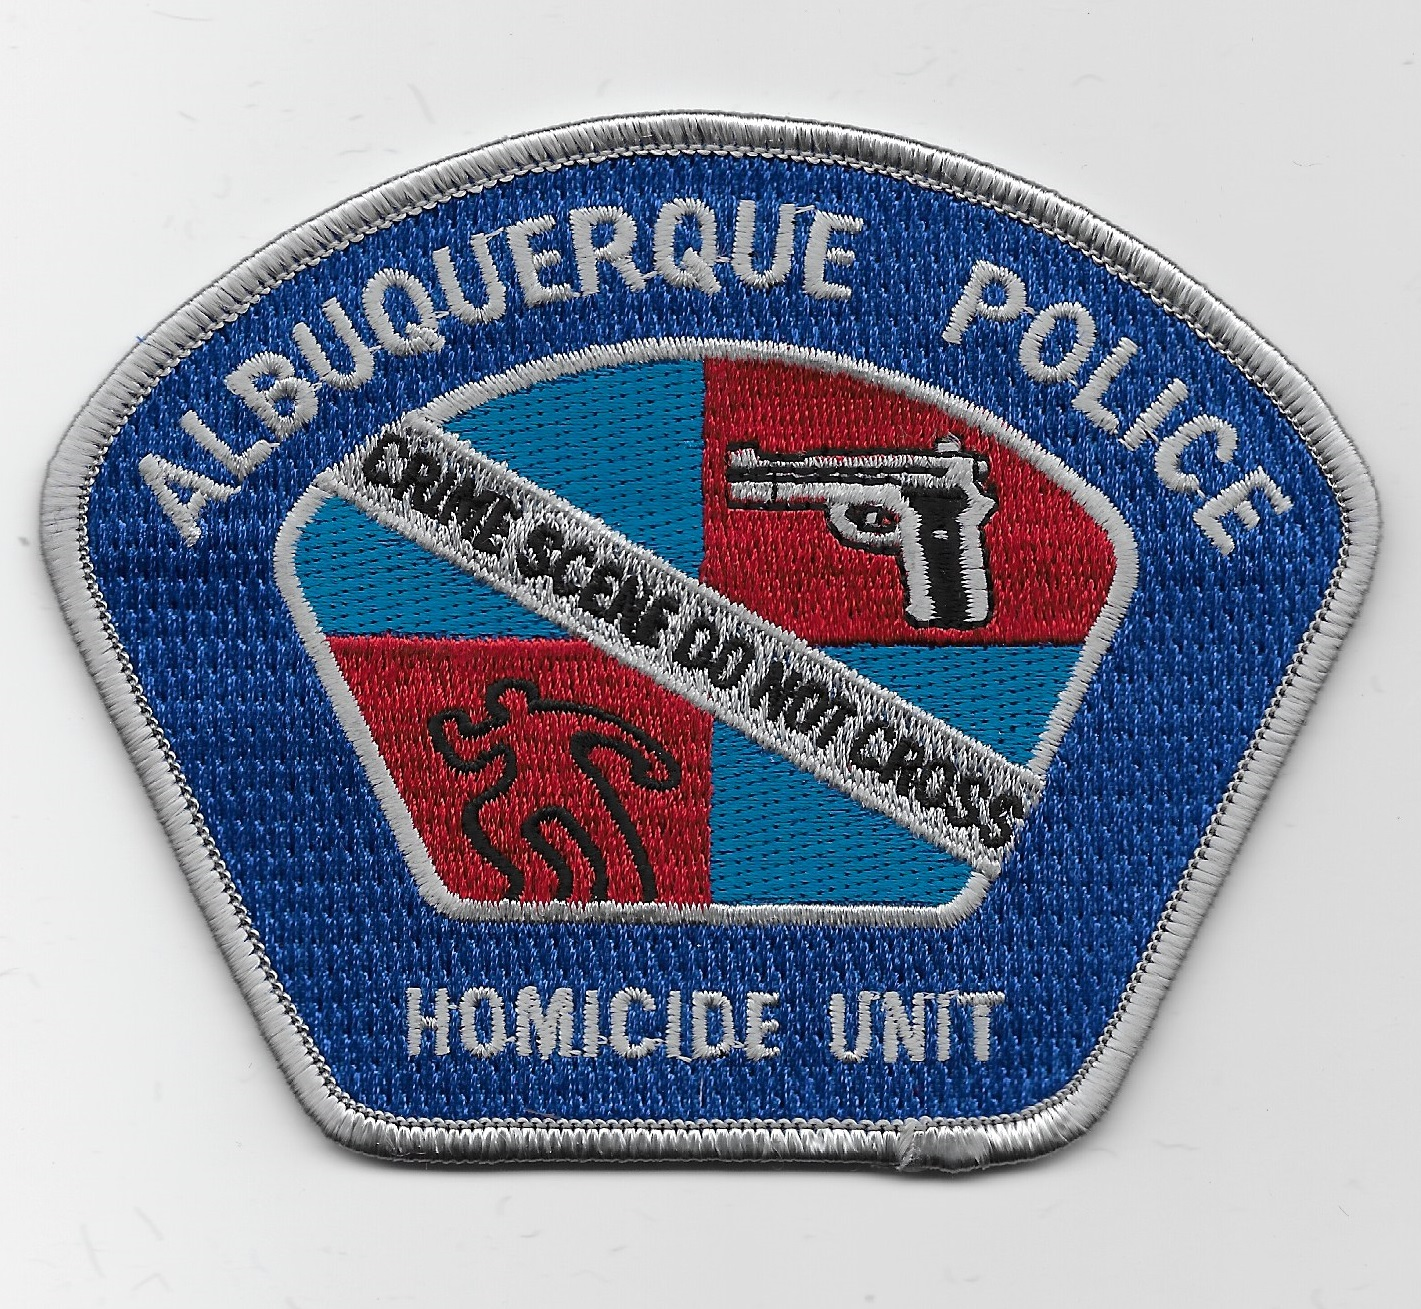 Albuquerque Police Homicide Unit NM